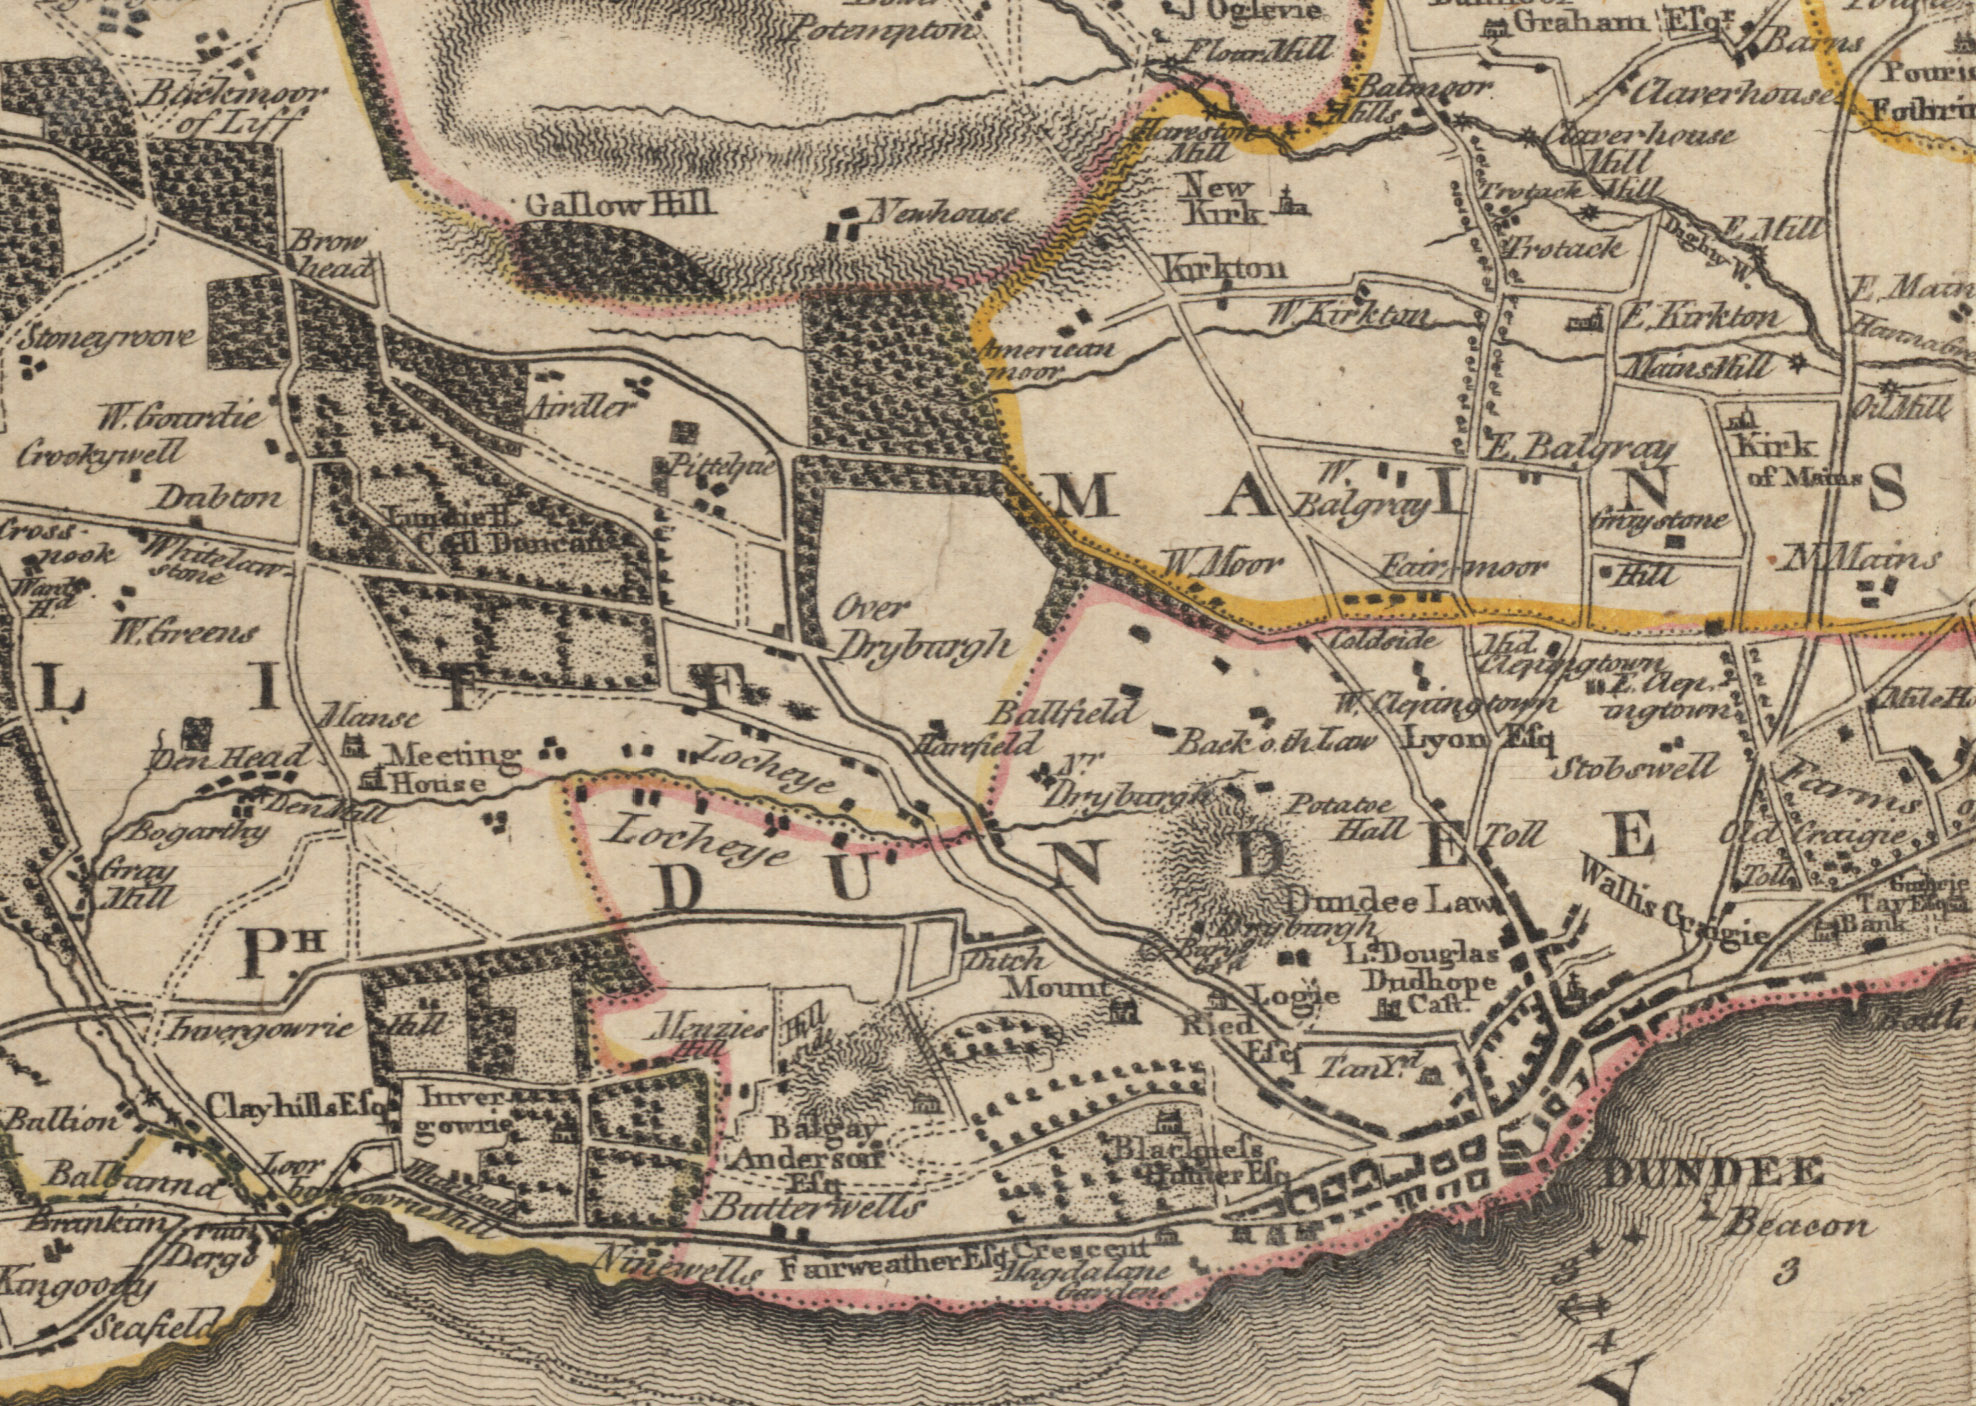 A map of Dundee from 1794.